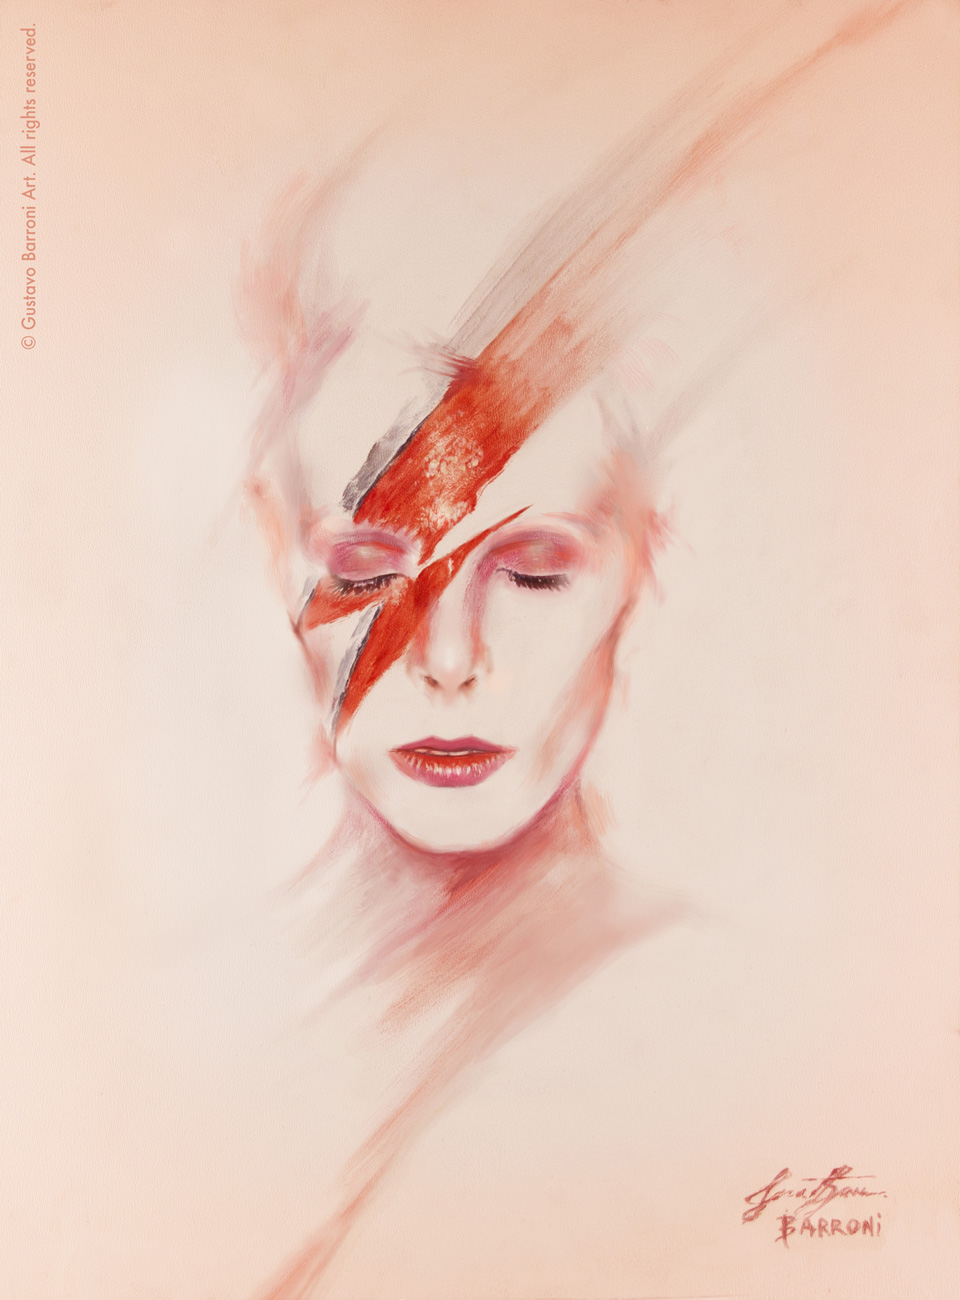 David Bowie portrait - Client work